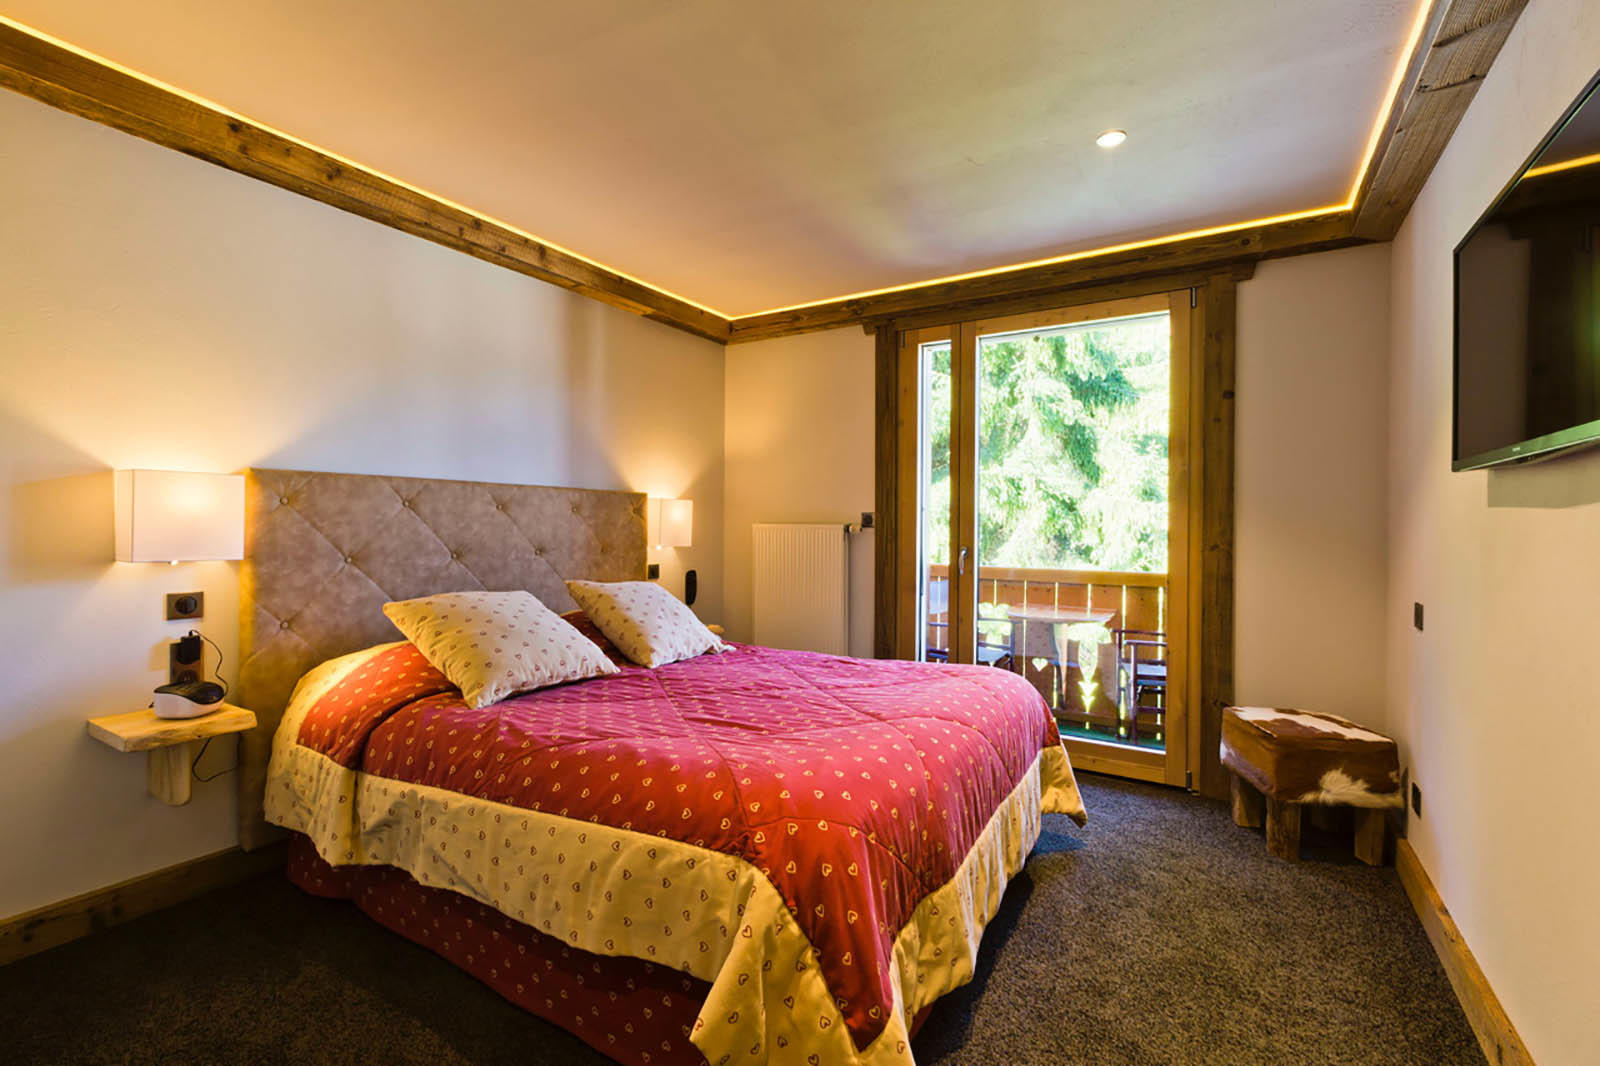 Double Bed in Superior Room at Hotel Les Gentianettes, The Origi